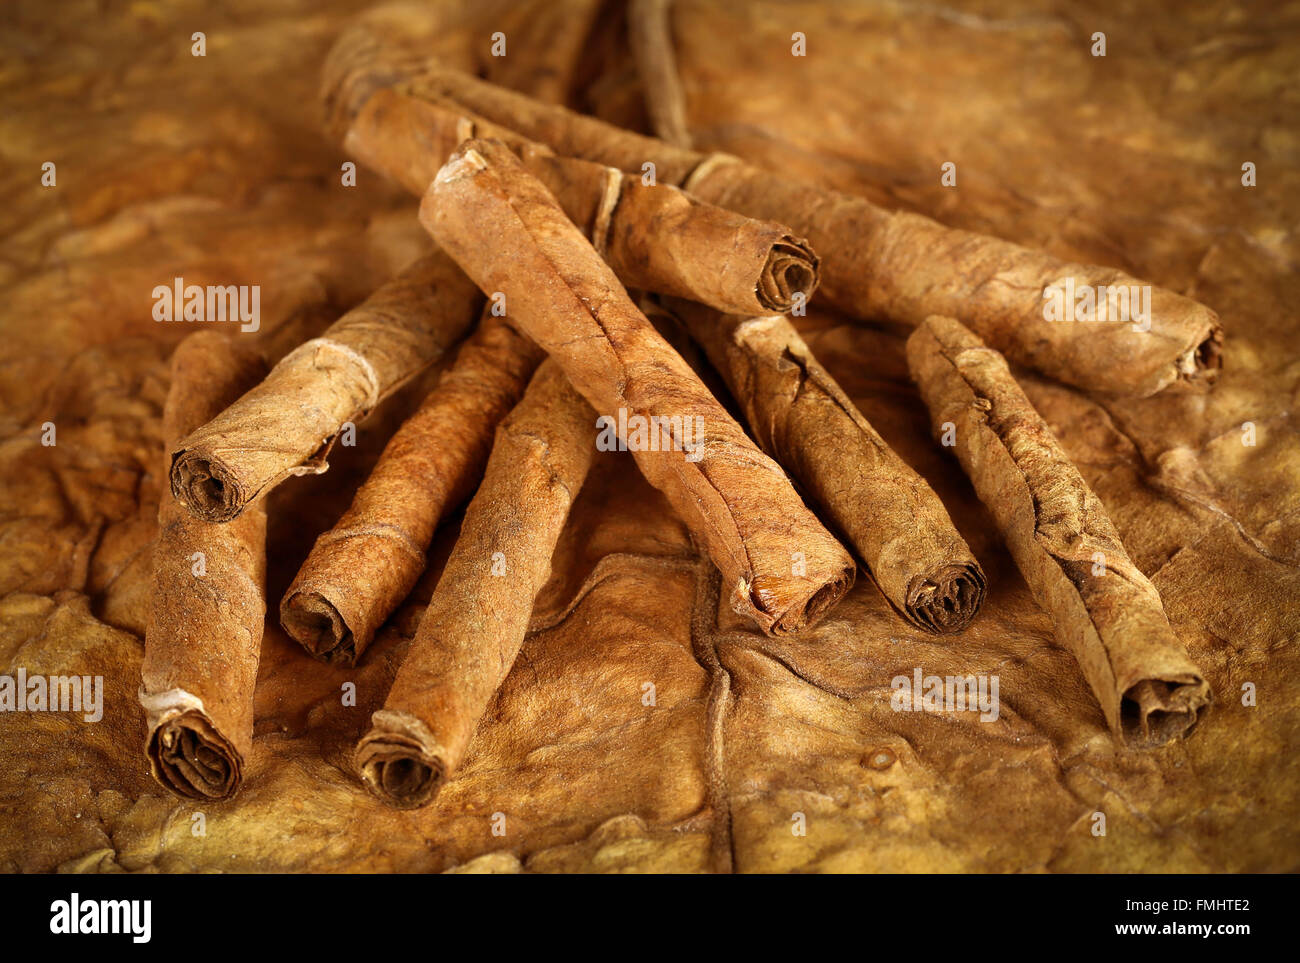 Closeup of some rolled dry tobacco leaves - Stock Image